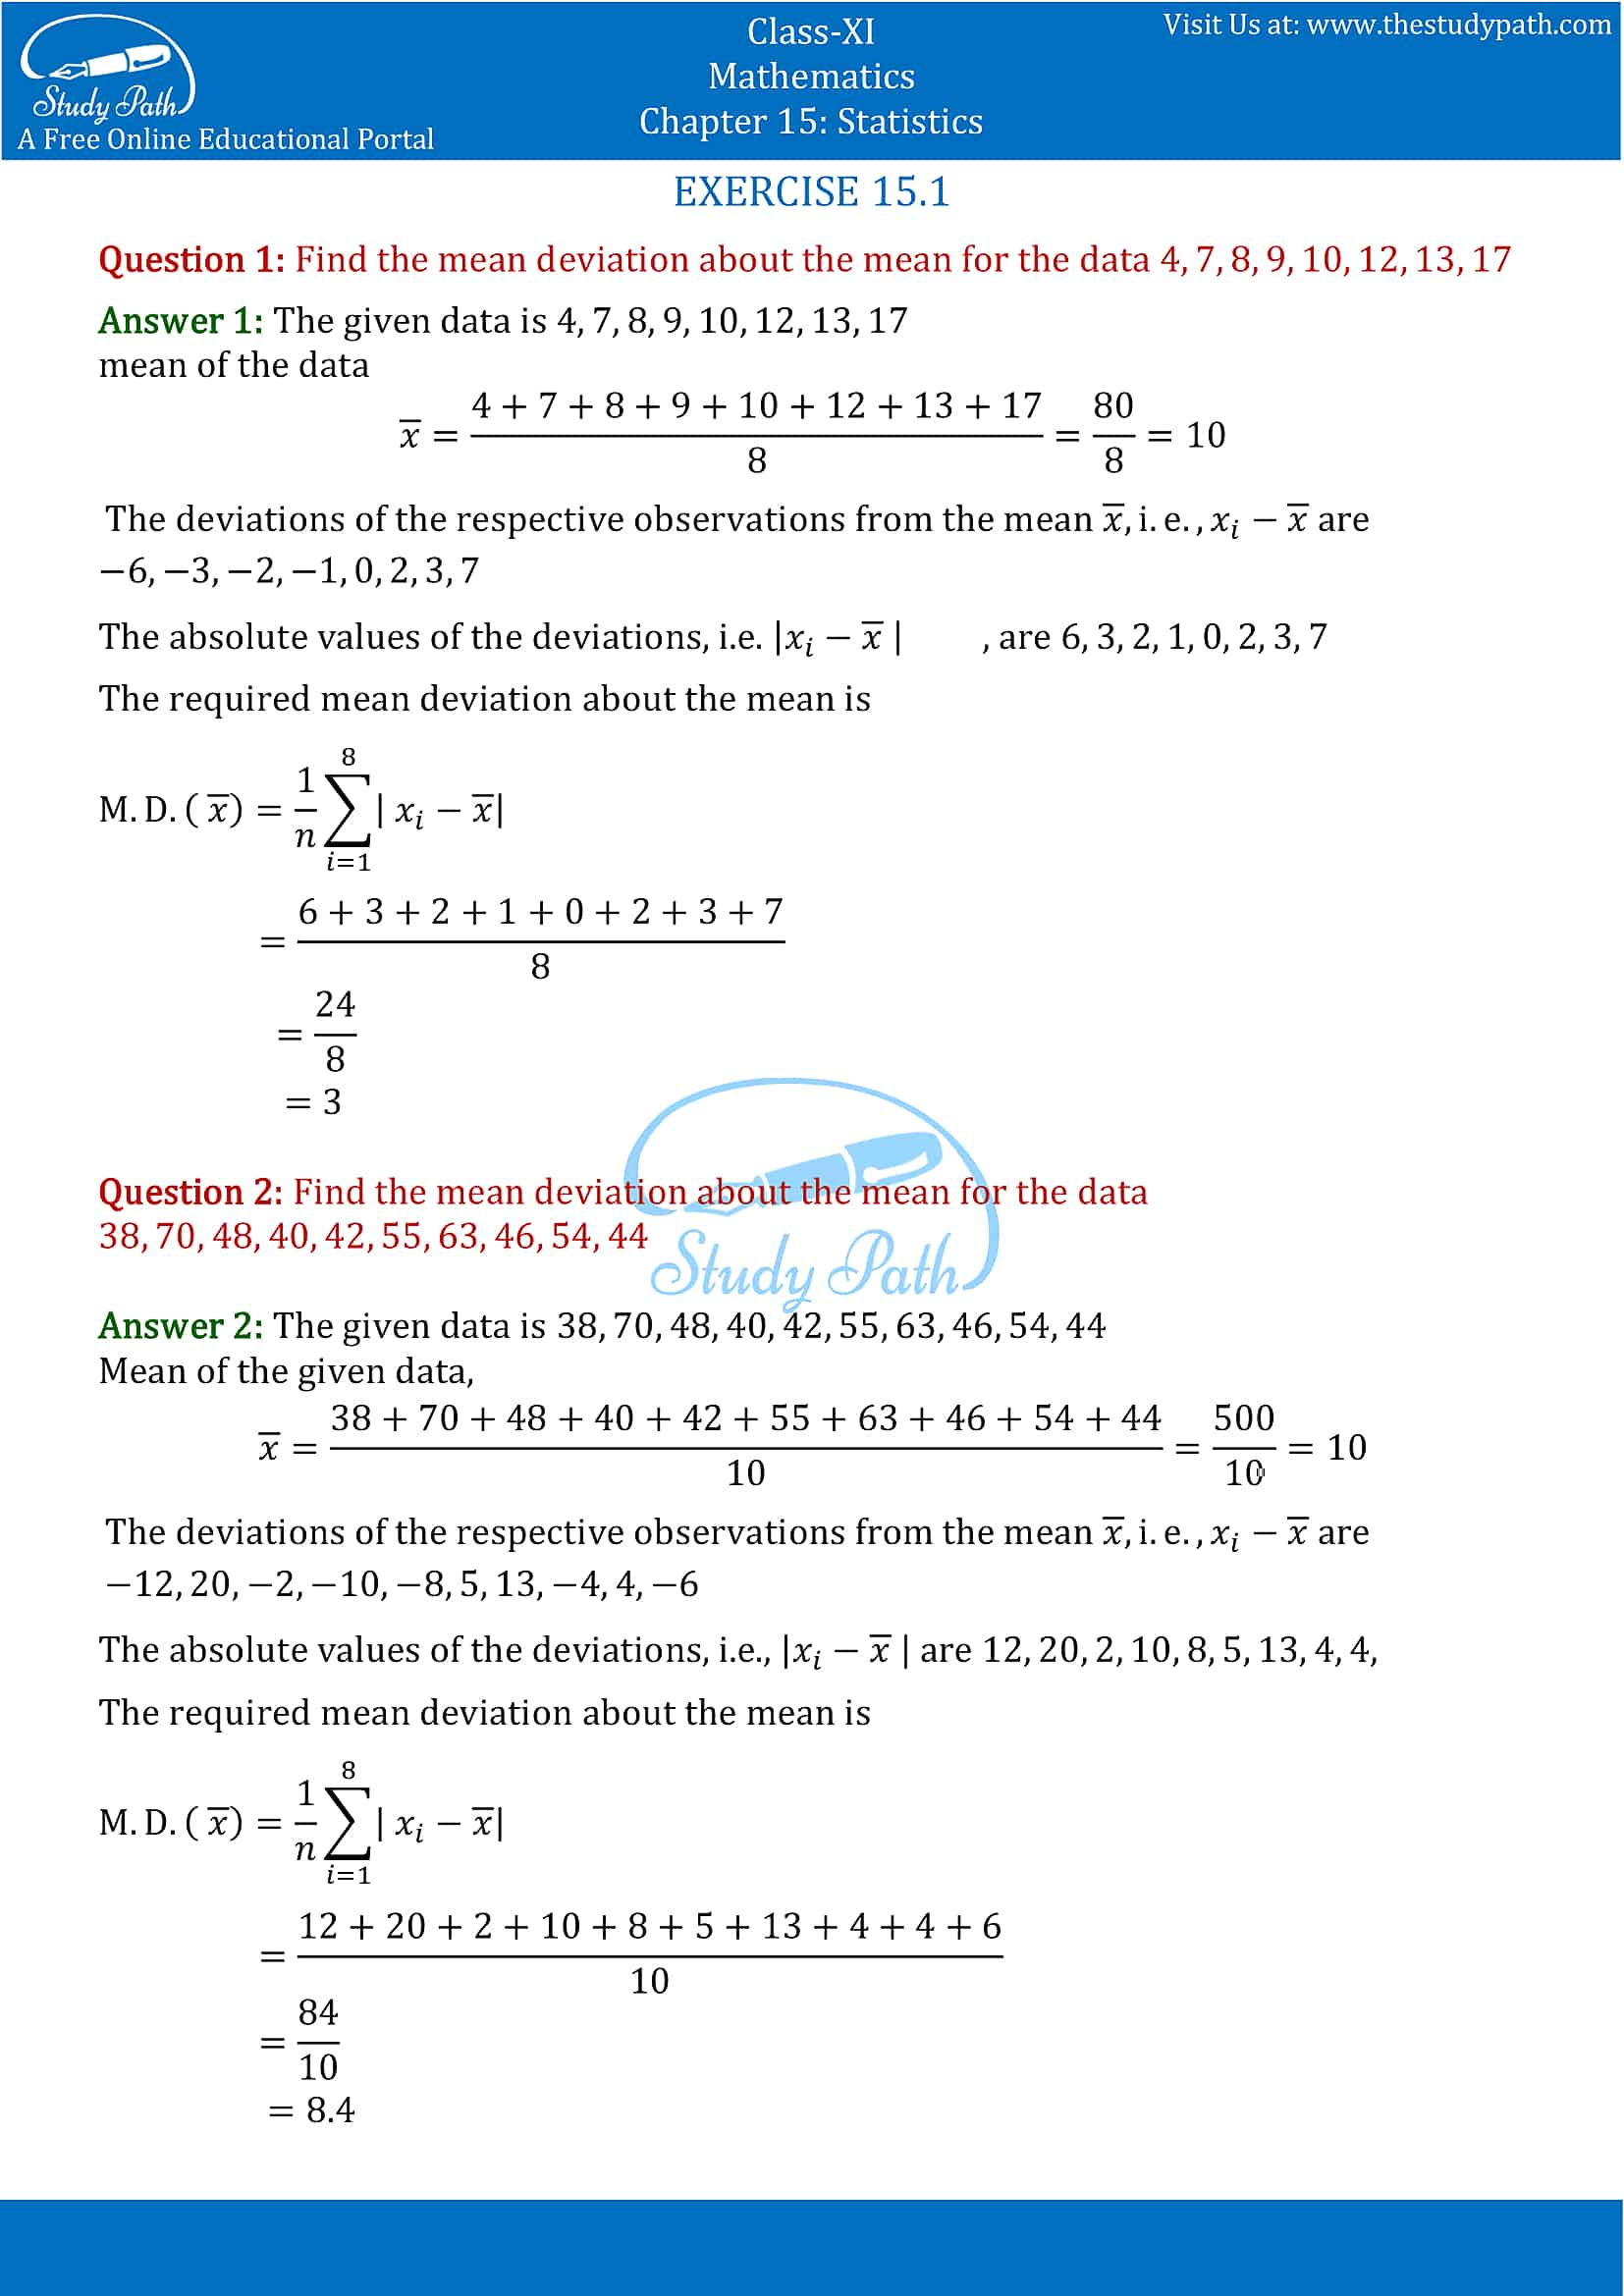 NCERT Solutions for Class 11 Maths chapter 15 Statistics Exercise 15.1 part-1